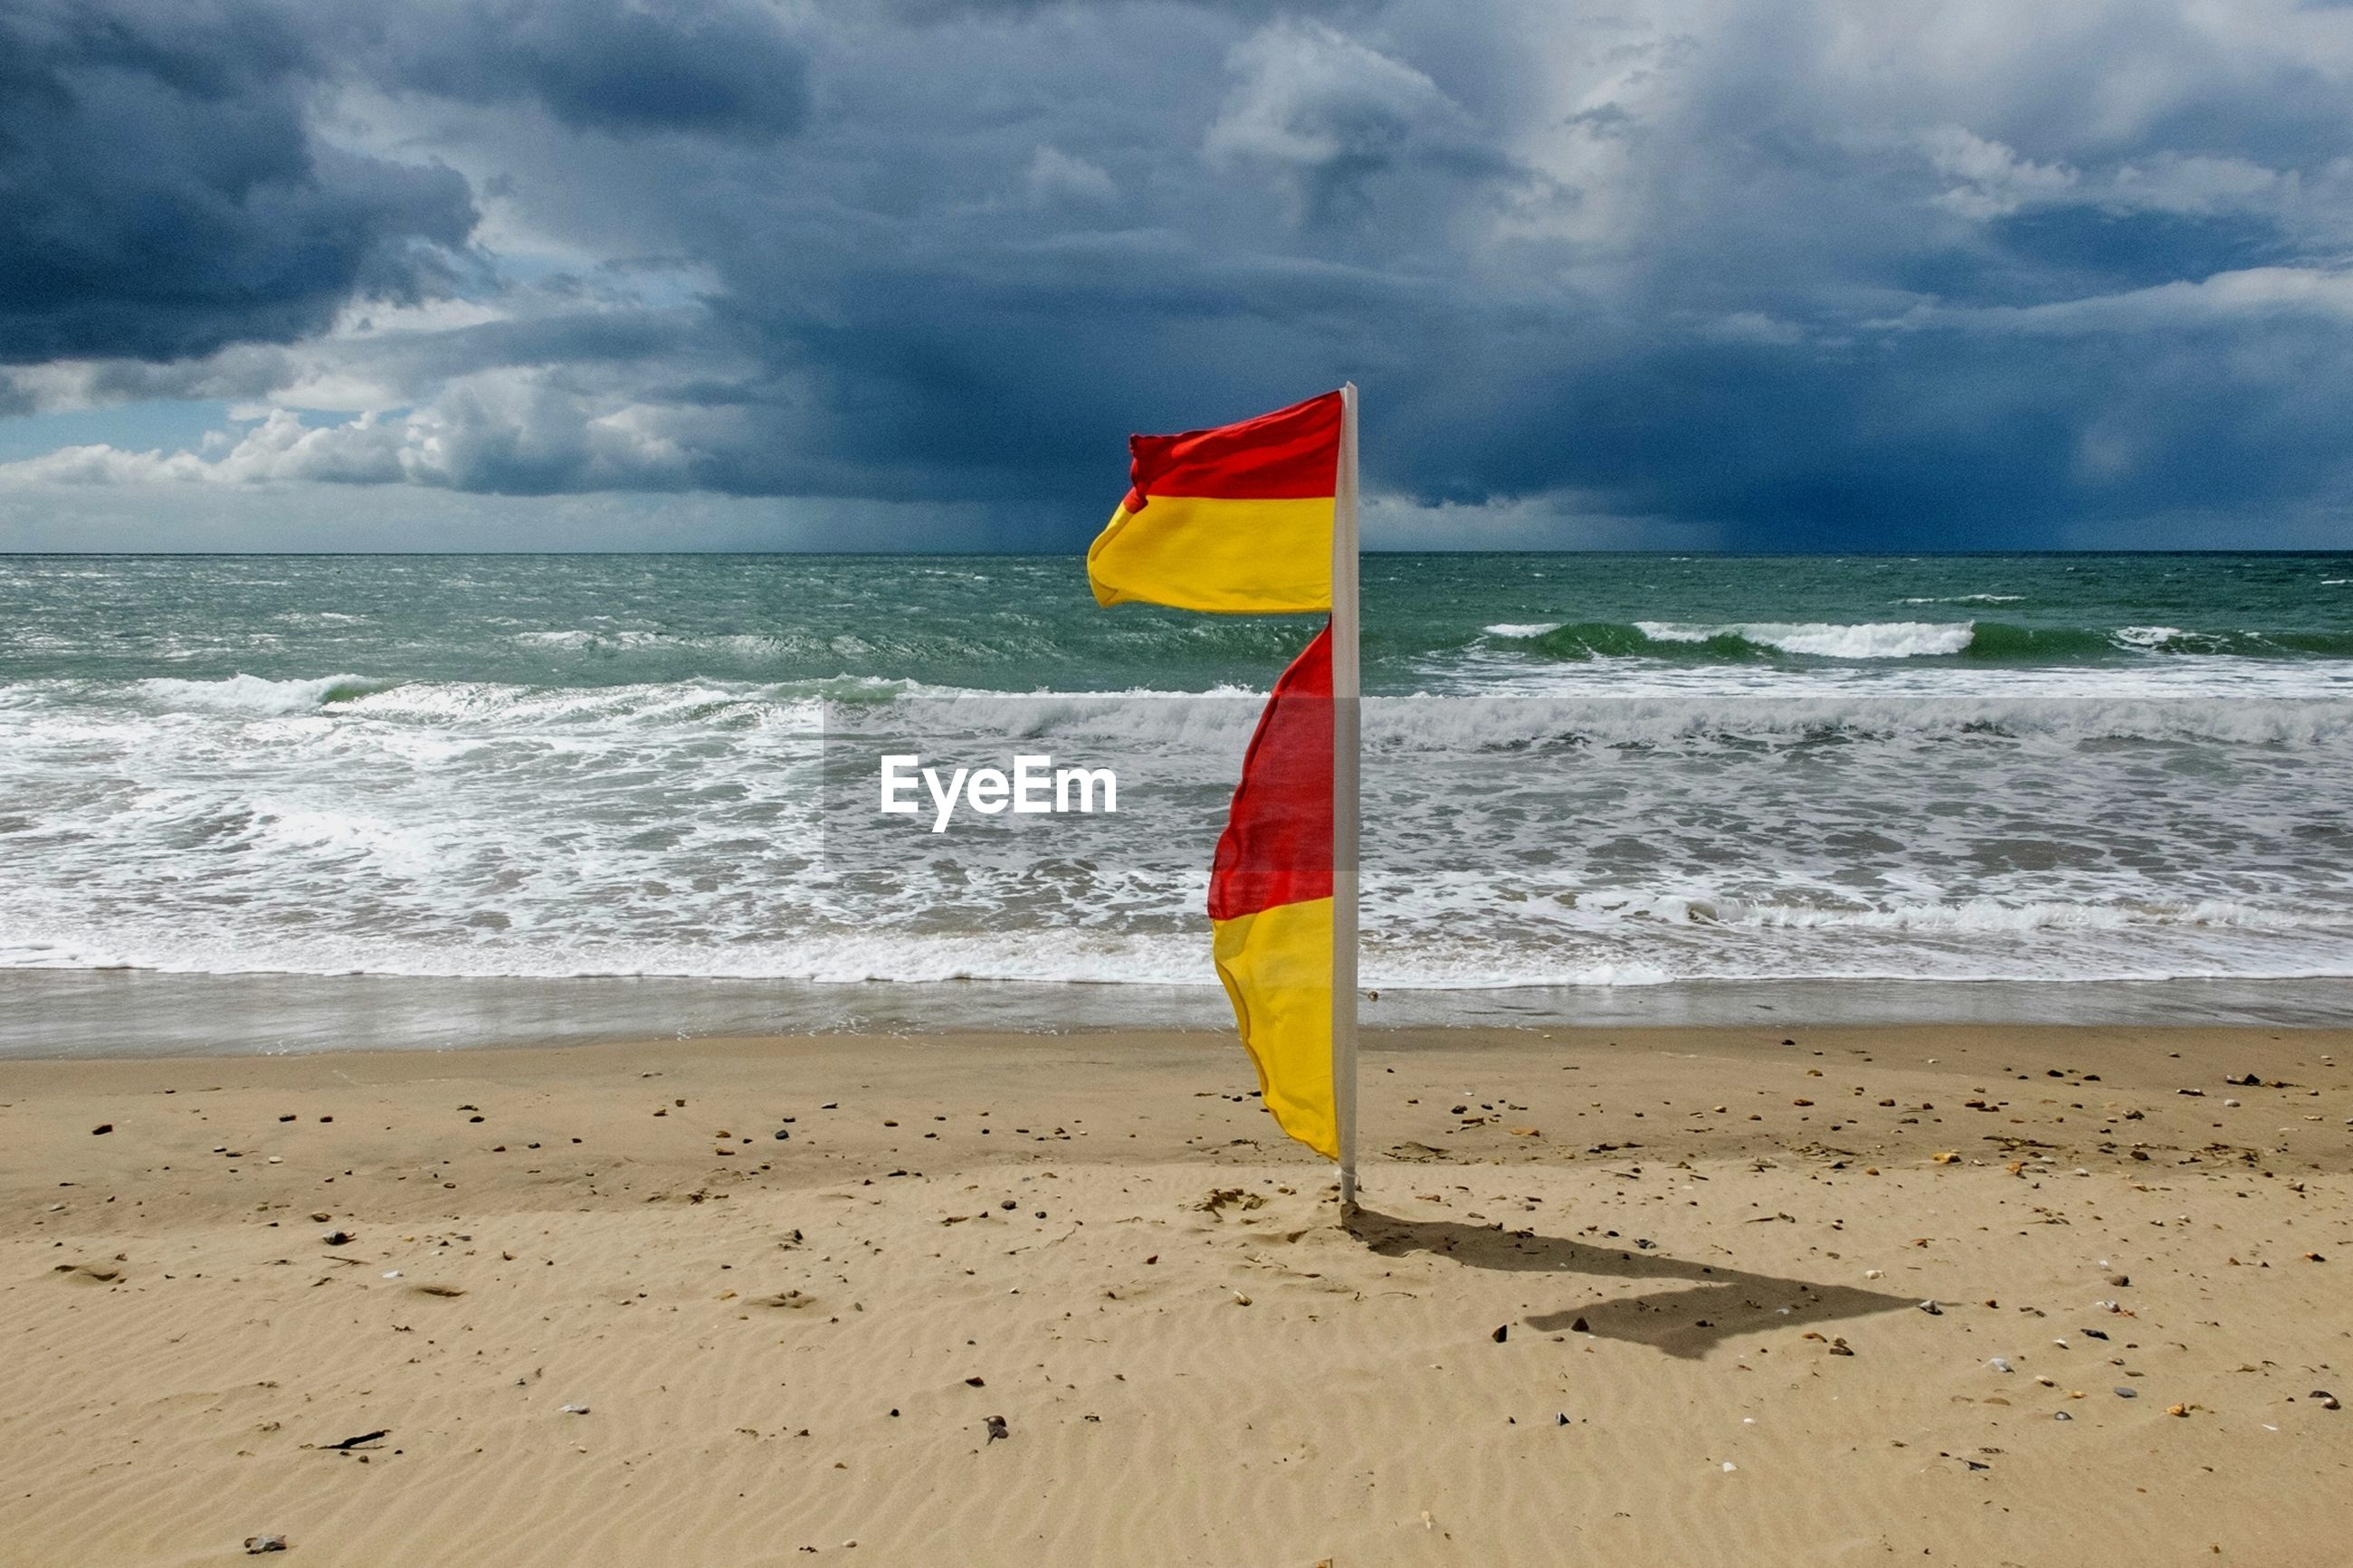 sea, horizon over water, beach, sky, water, shore, cloud - sky, tranquility, tranquil scene, scenics, sand, flag, beauty in nature, cloud, nature, cloudy, idyllic, wave, vacations, coastline